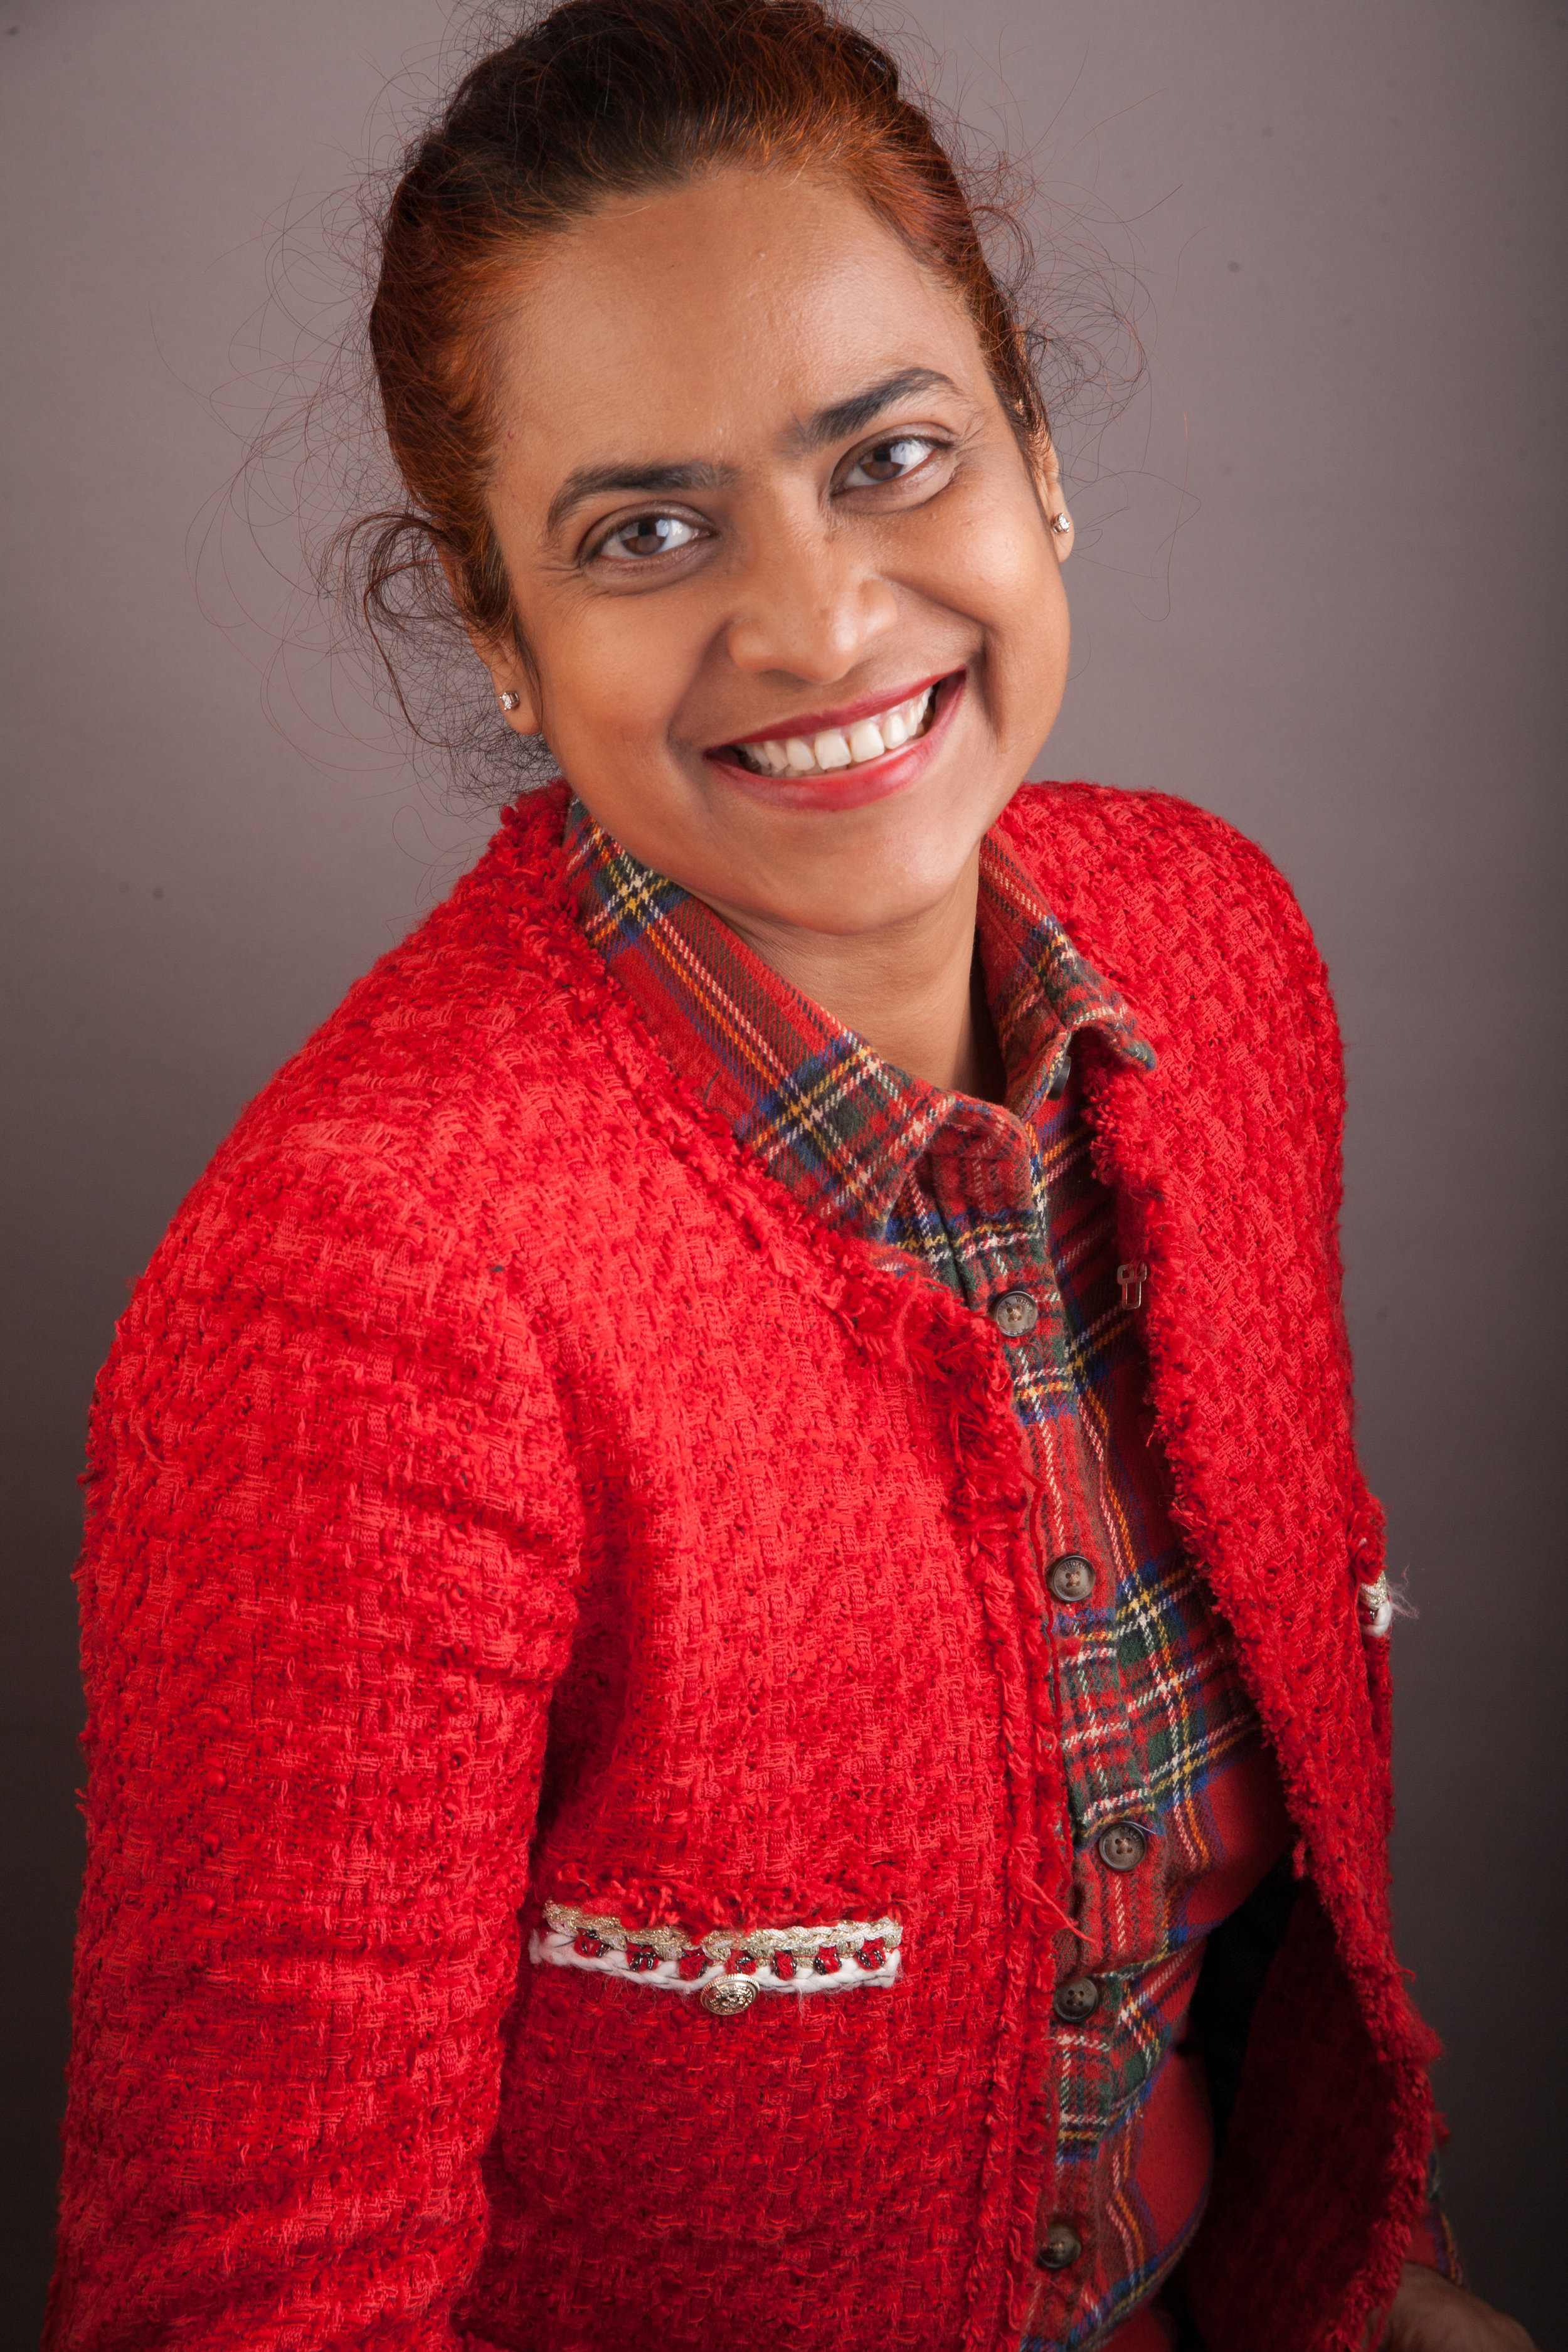 Ritu Saheb, AIA - Ms. Saheb has over 15 years of experience designing and altering buildings in the 5 boroughs. She is an expert in Zoning changes and understands City Regulations. She saves time by cutting down city red tape.She brings in contractors and helps build the project.View Ms. Saheb's extensive bio and project list.Read 24- 5-star reviews on Houzz.